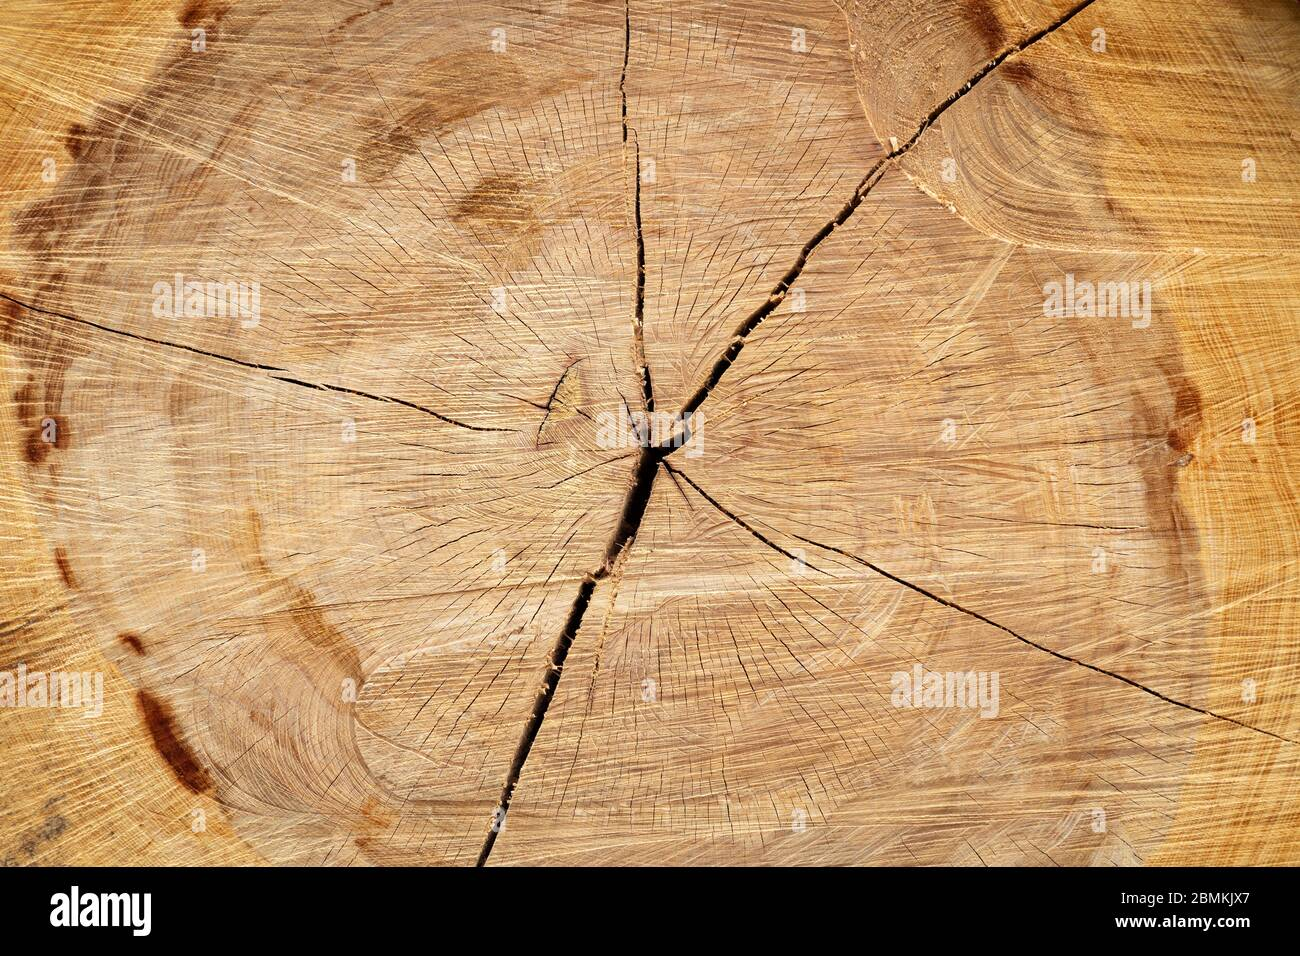 Stump of a big old tree felled - section of the trunk with annual rings Stock Photo